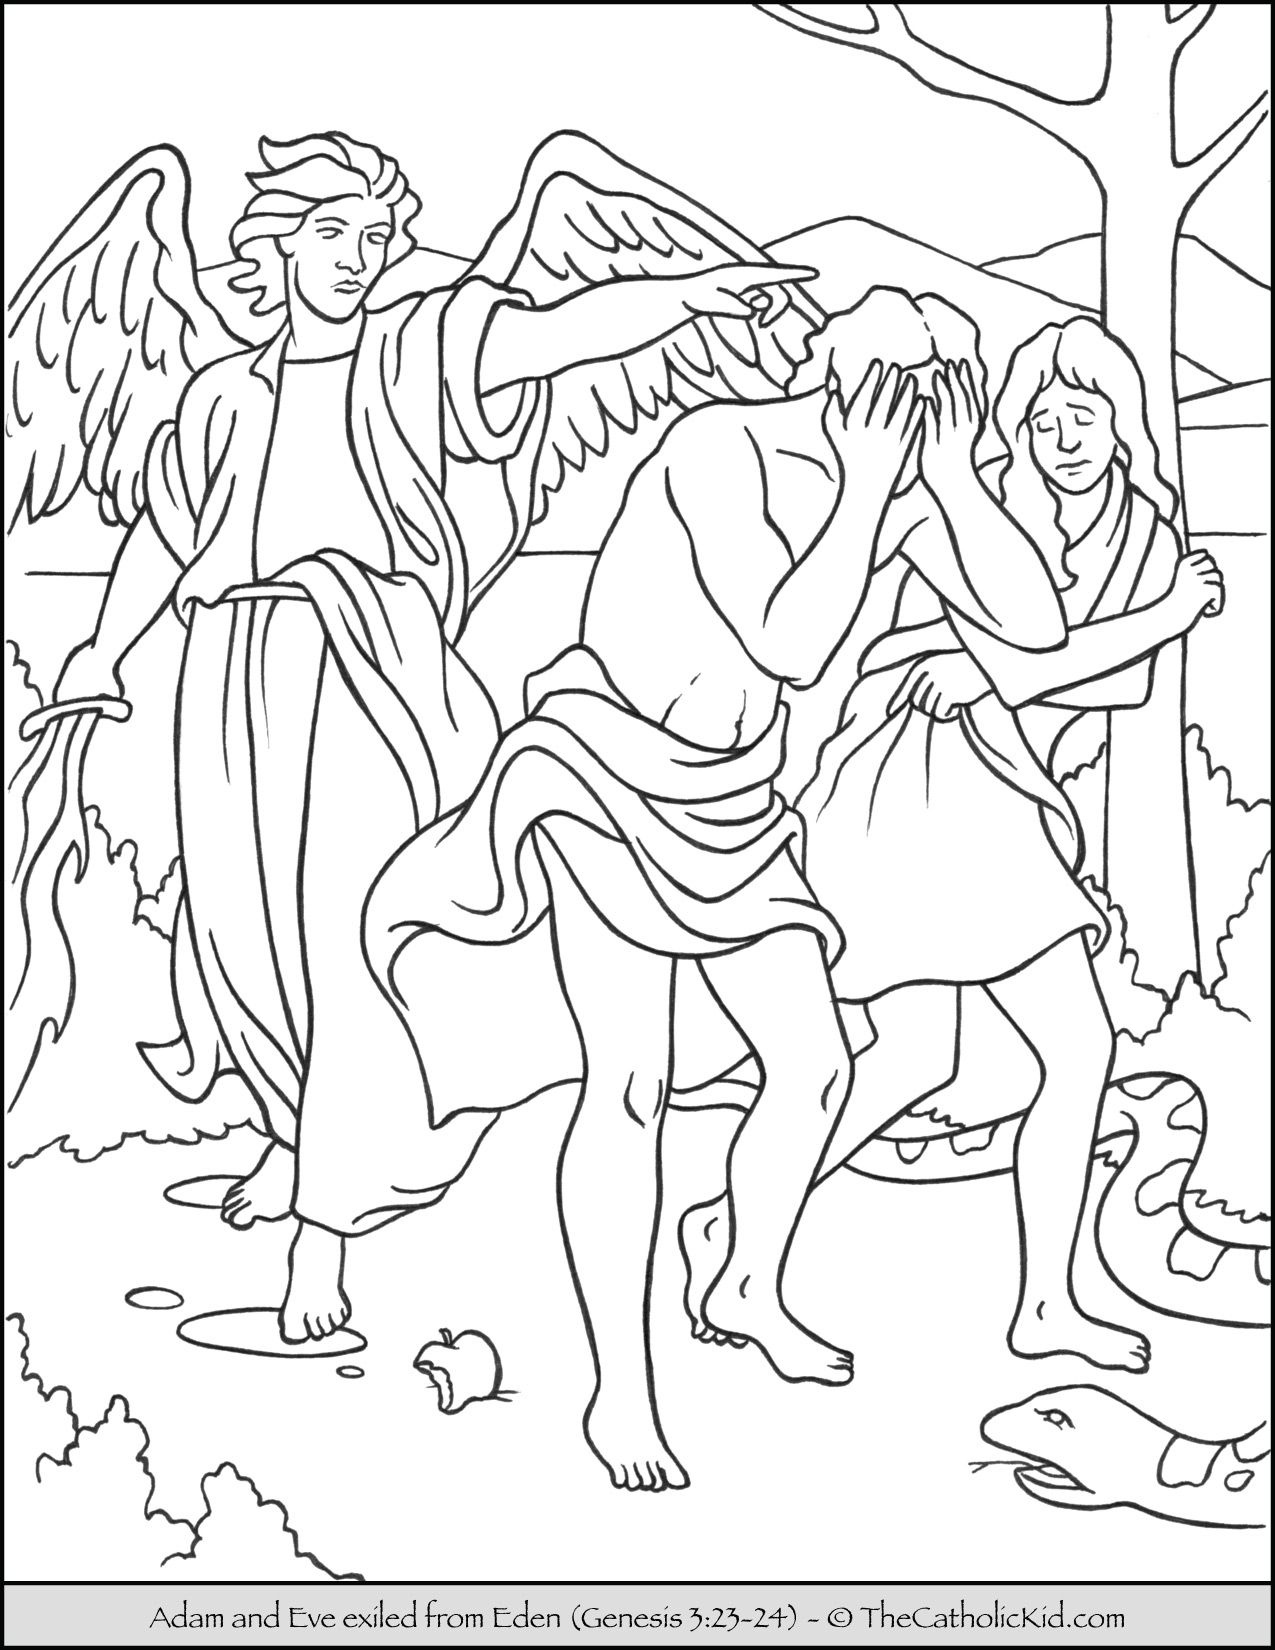 adam and eve coloring page cain abel 1 caim e abel english class pinterest page eve adam coloring and